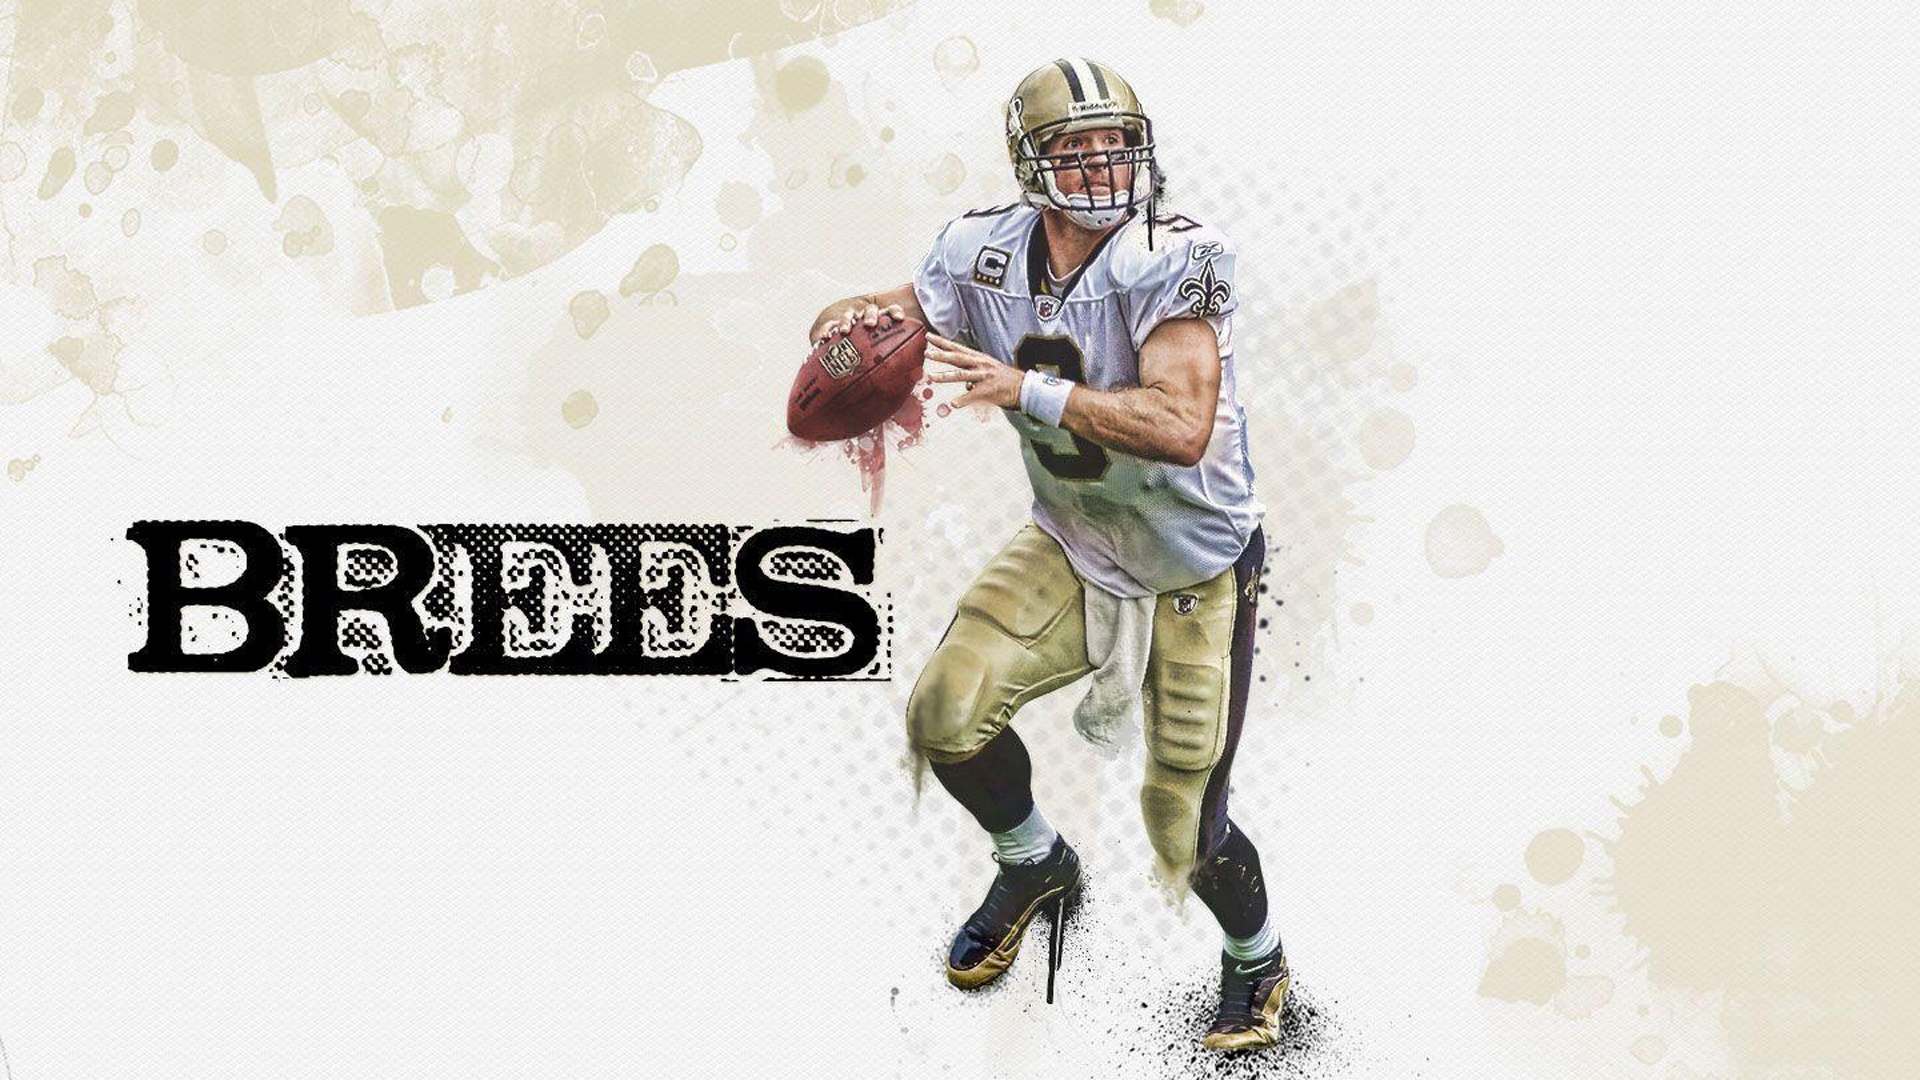 Download Drew Brees With Ball Hd Drew Brees